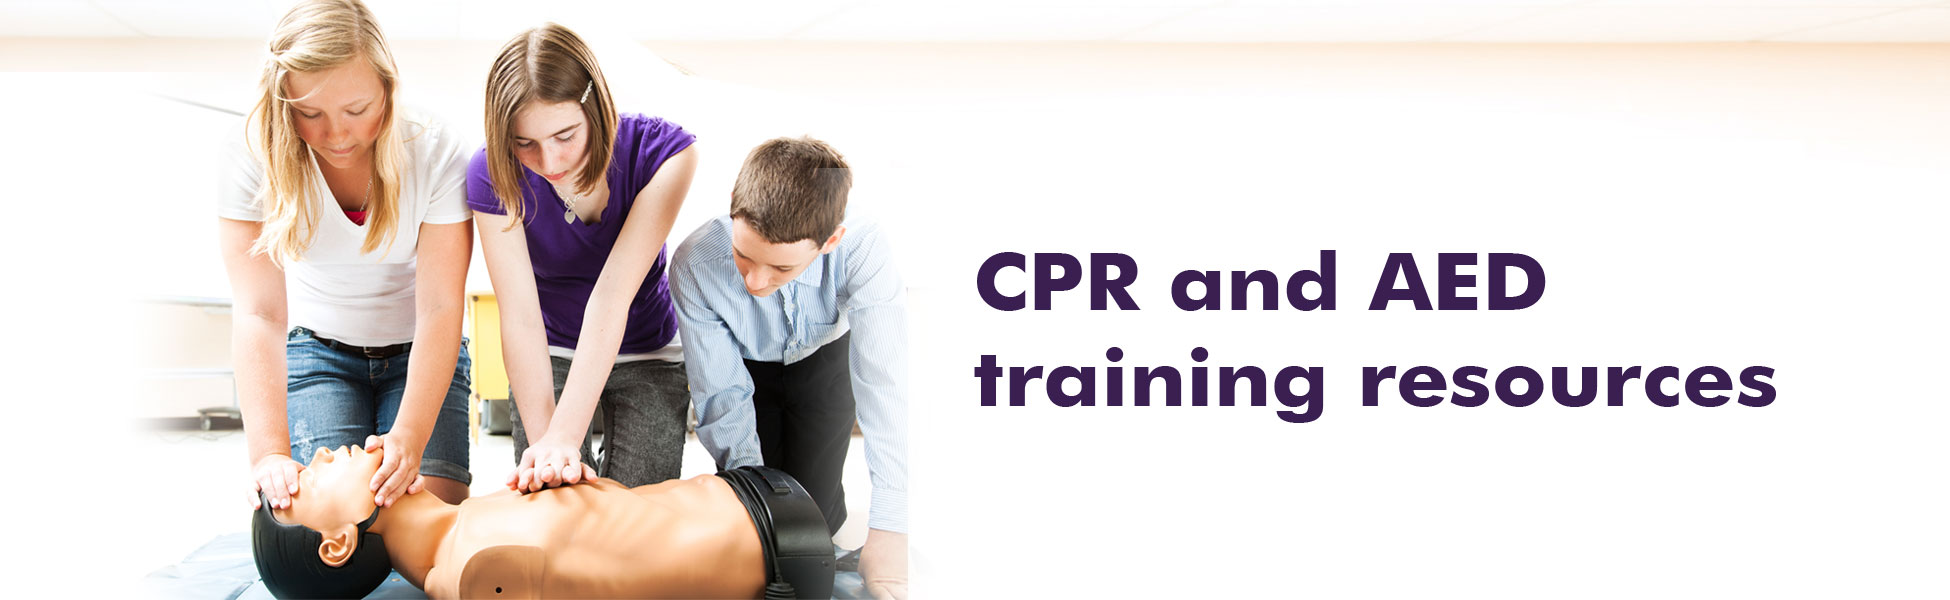 CPR and AED training resources